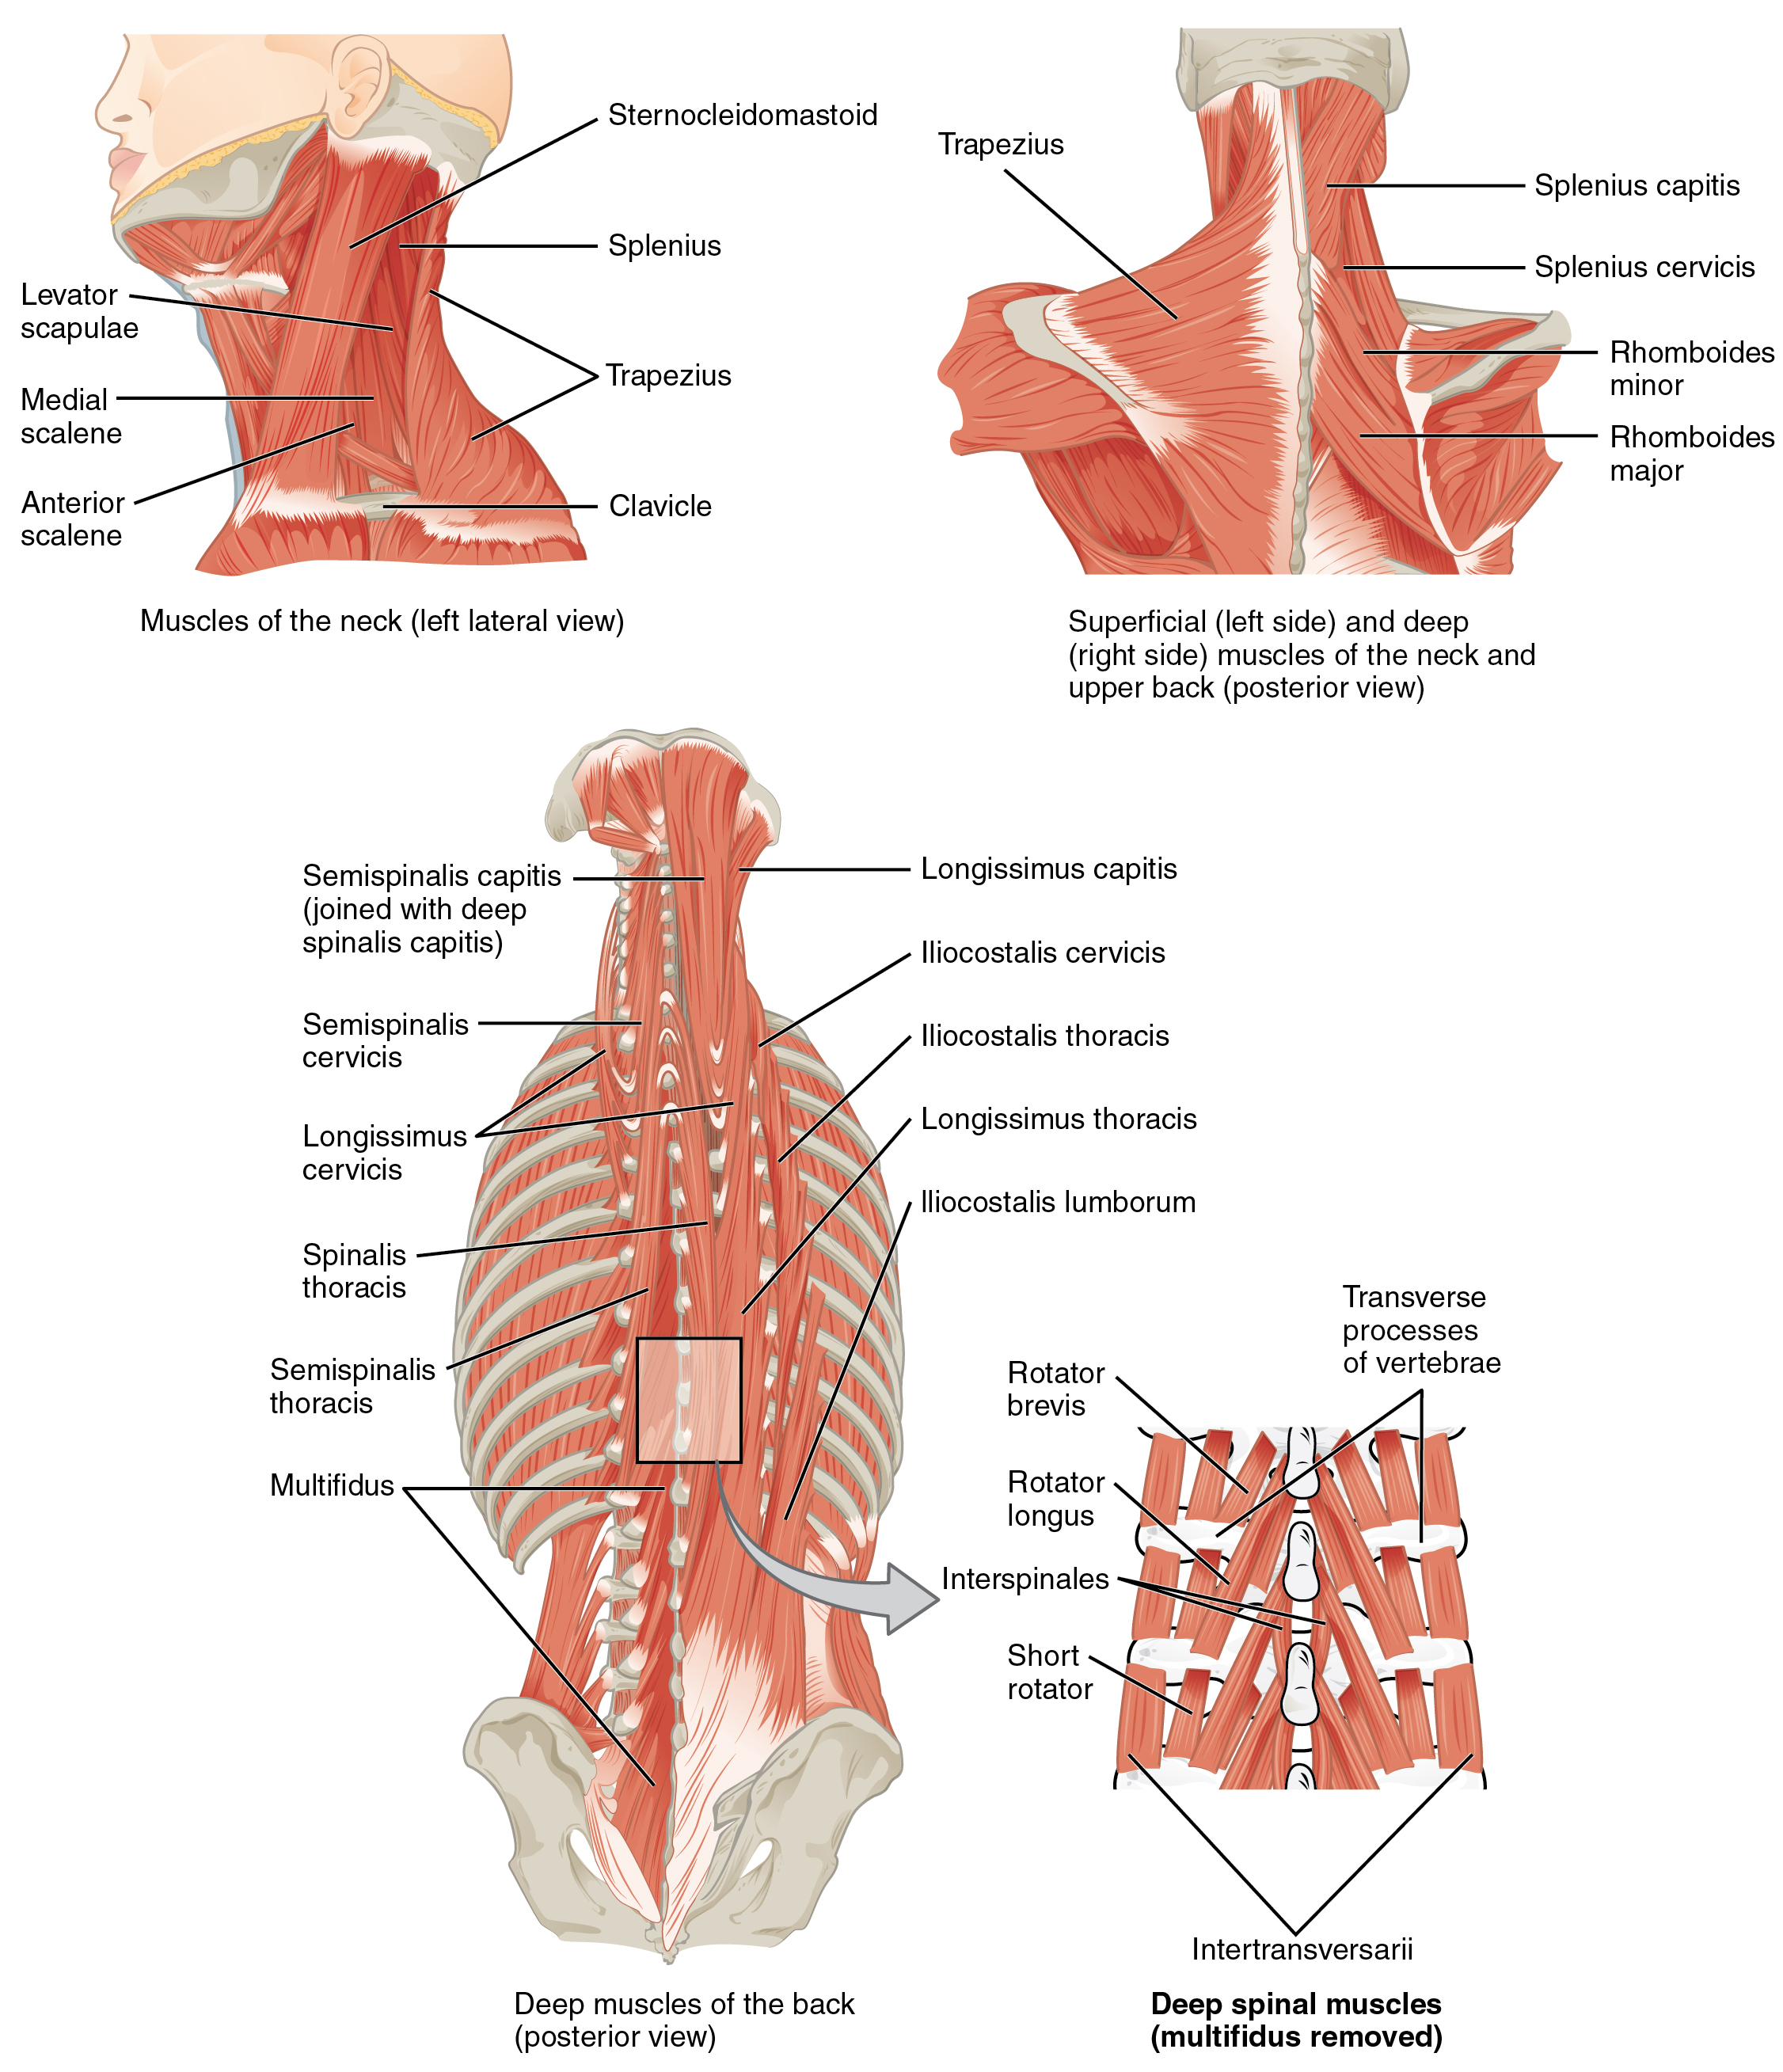 The top left panel shows a lateral view of the muscles of the neck, and the bottom left panel shows the posterior view of the superficial and deep muscles of the neck. The center panel shows the deep muscles of the back, and the right panel shows the deep spinal muscles.